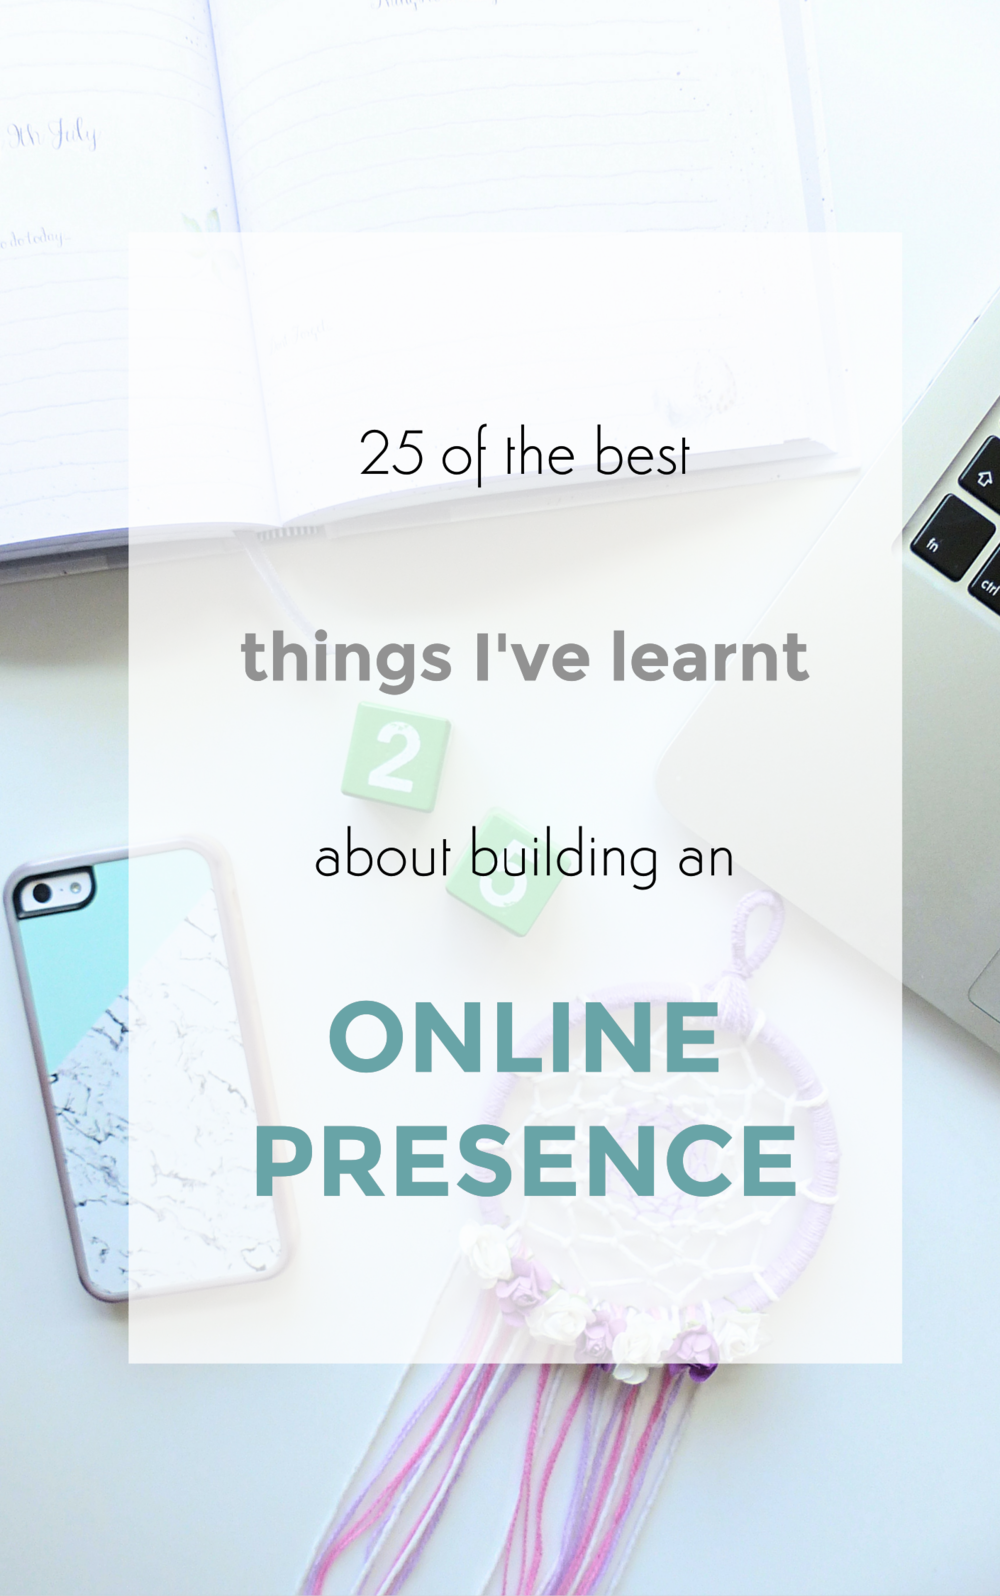 25 OF THE BEST THINGS I'VE LEARNT ABOUT BUILDING AN ONLINE PRESENCE